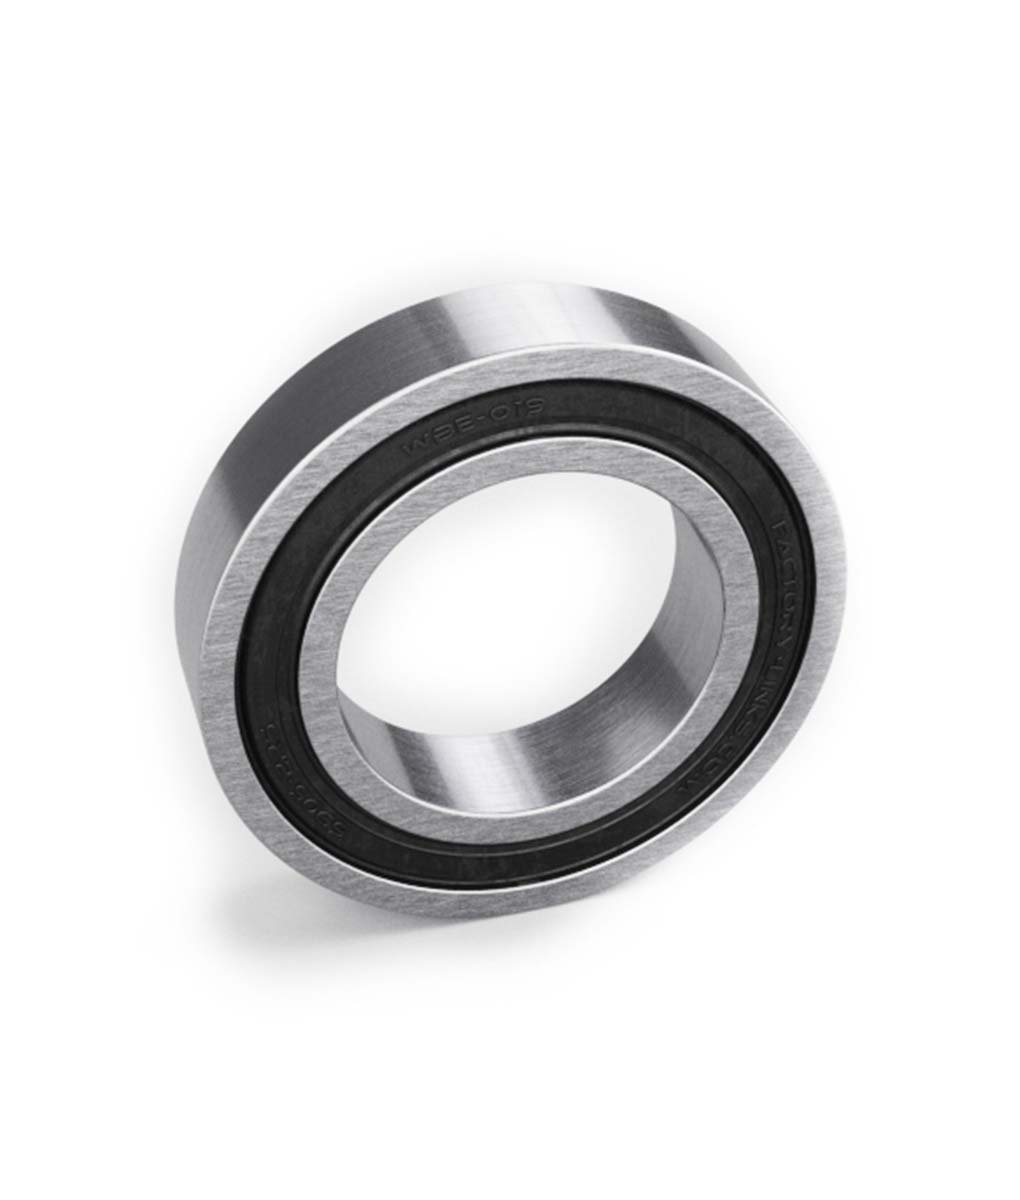 : CRE 2000-2019 Rear Wheel Bearing Kits Replacement for Honda CRF R 2002-2015 : CR R HM CRF X Factory-Links